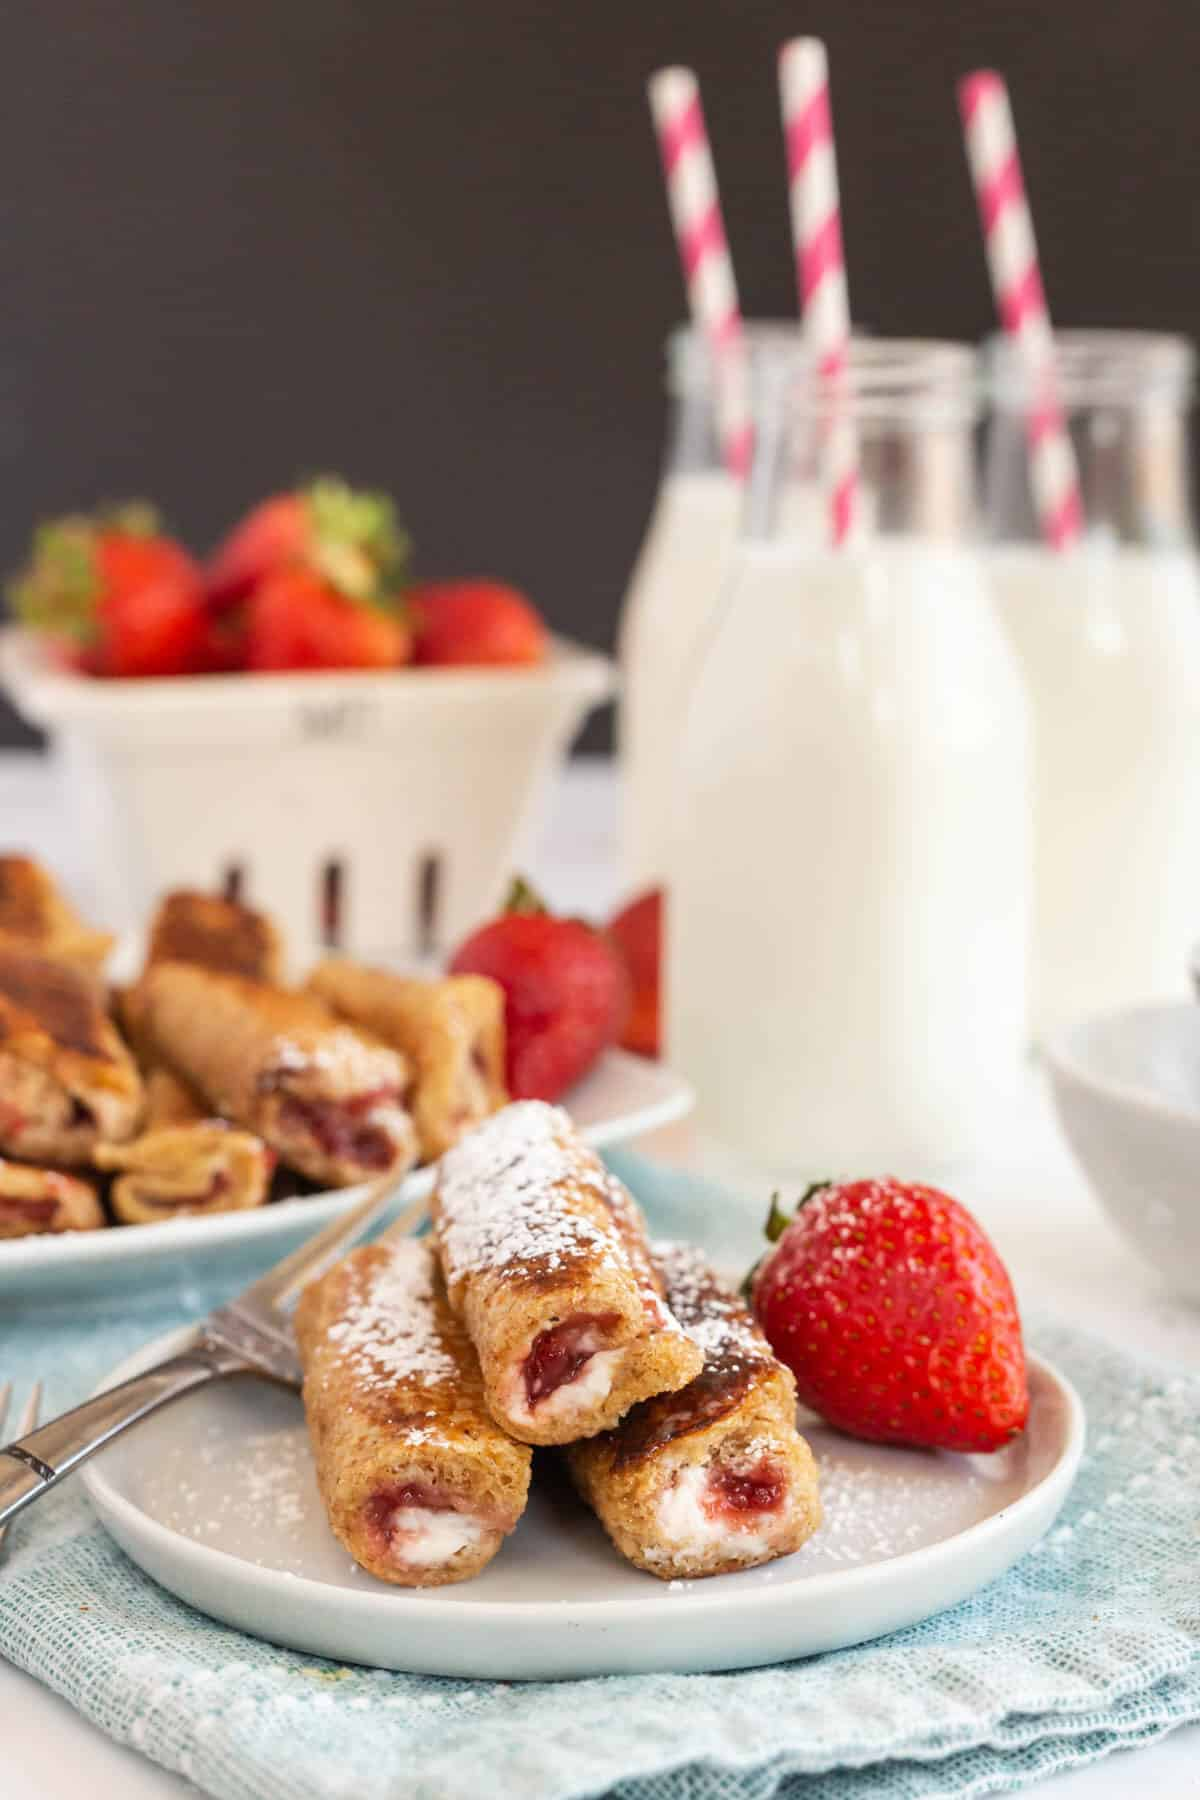 french toast rolls ups with strawberries